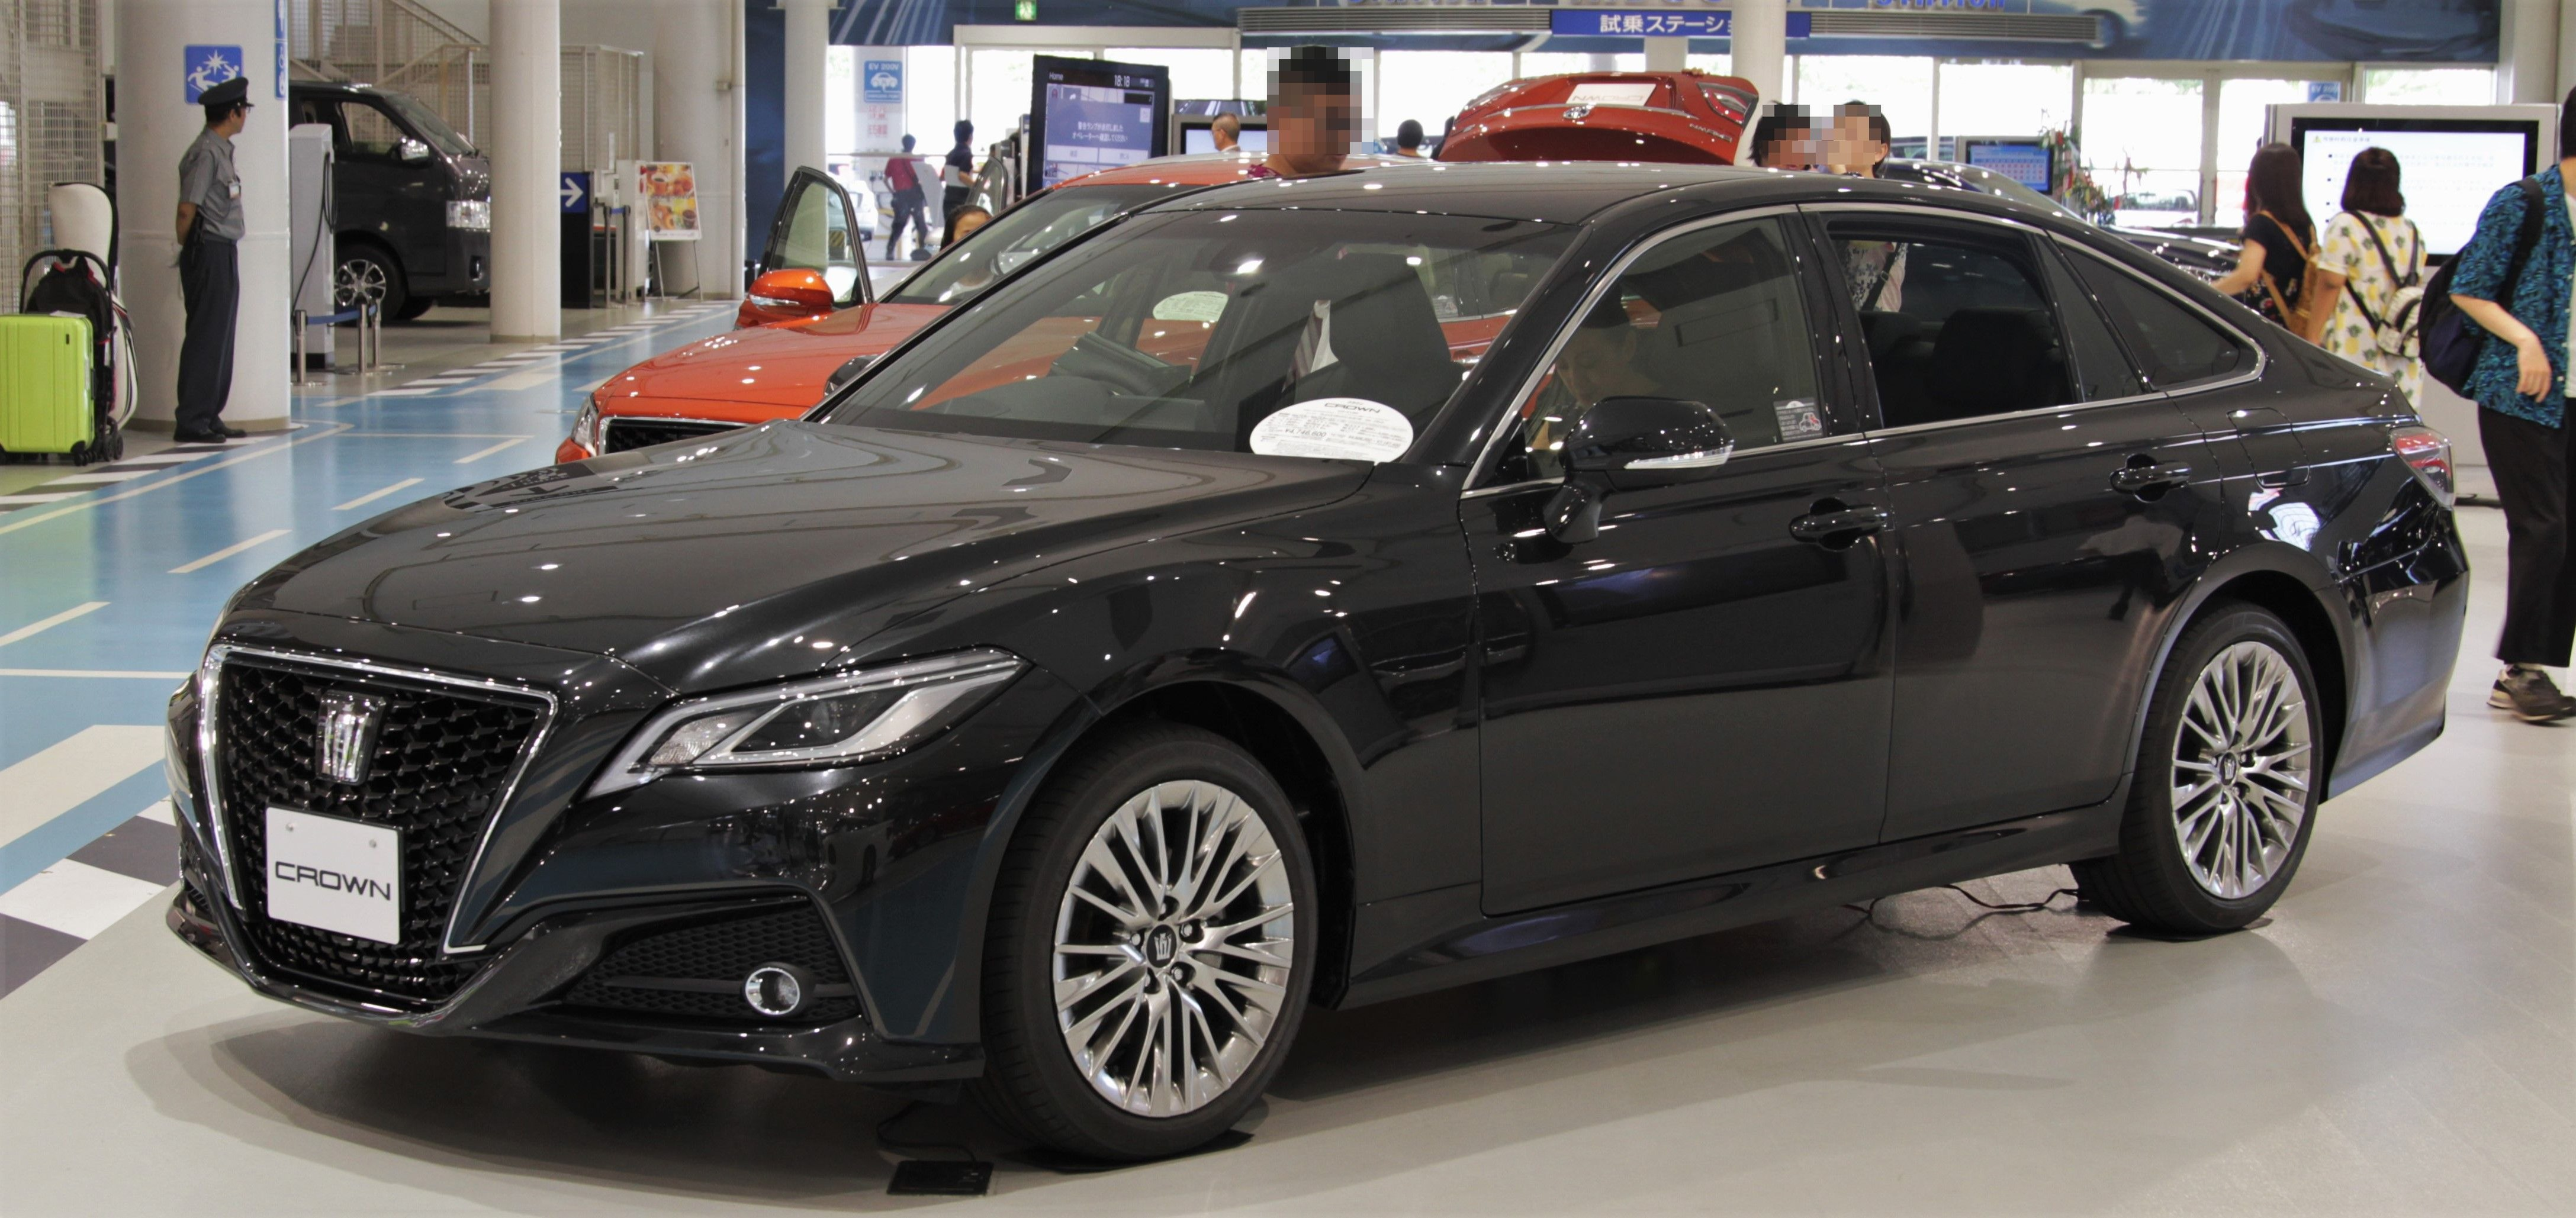 Toyota Crown The plete information and online sale with free